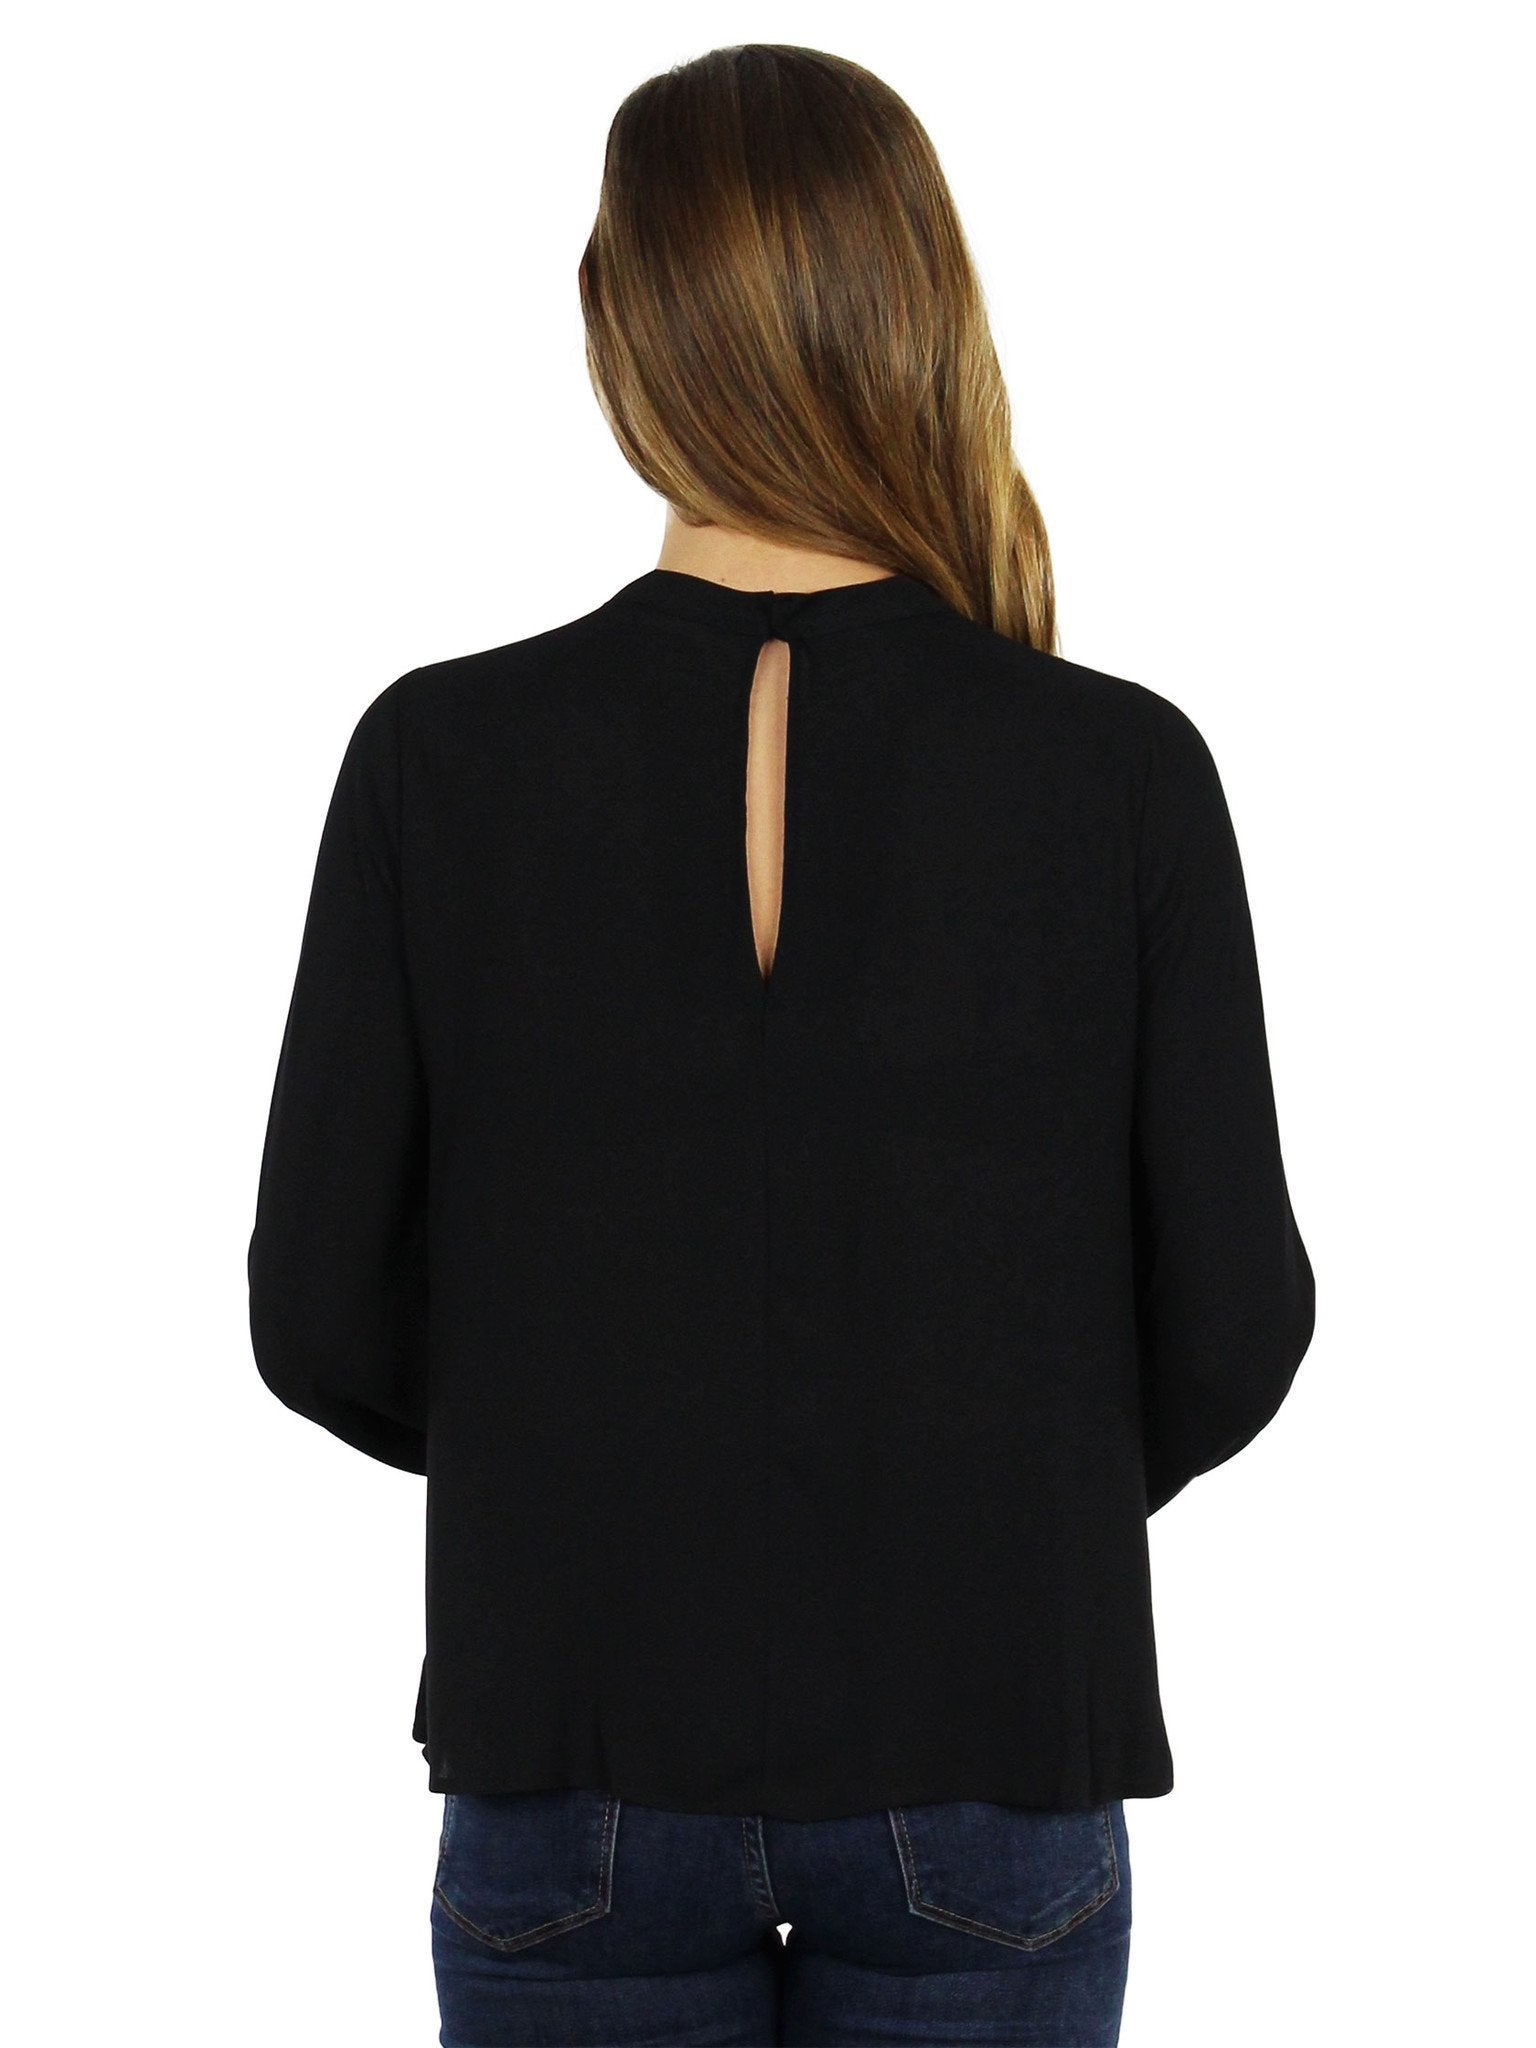 Women wearing a top rental from Lush called Back To Basics Tunic